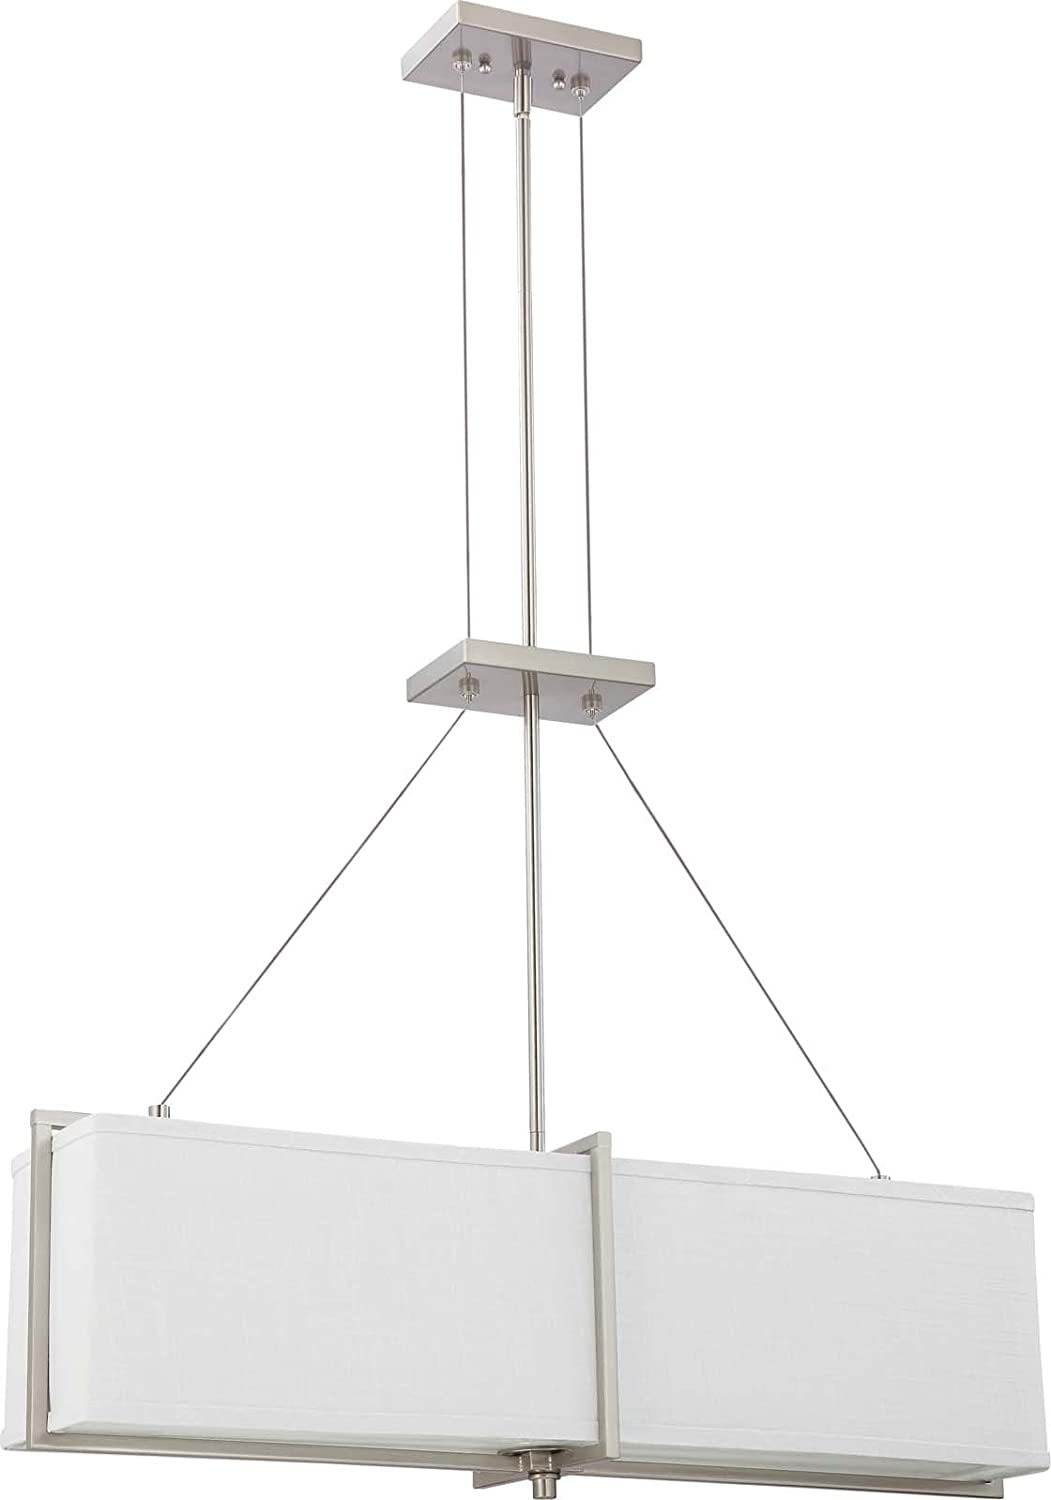 contemporary 9 helius lighting. Nuvo Lighting 60/4505 Four Light Logan Pendant With Slate Gray Fabric Shade/Frosted Diffuser, Brushed Nickel - Ceiling Fixtures Amazon.com Contemporary 9 Helius B